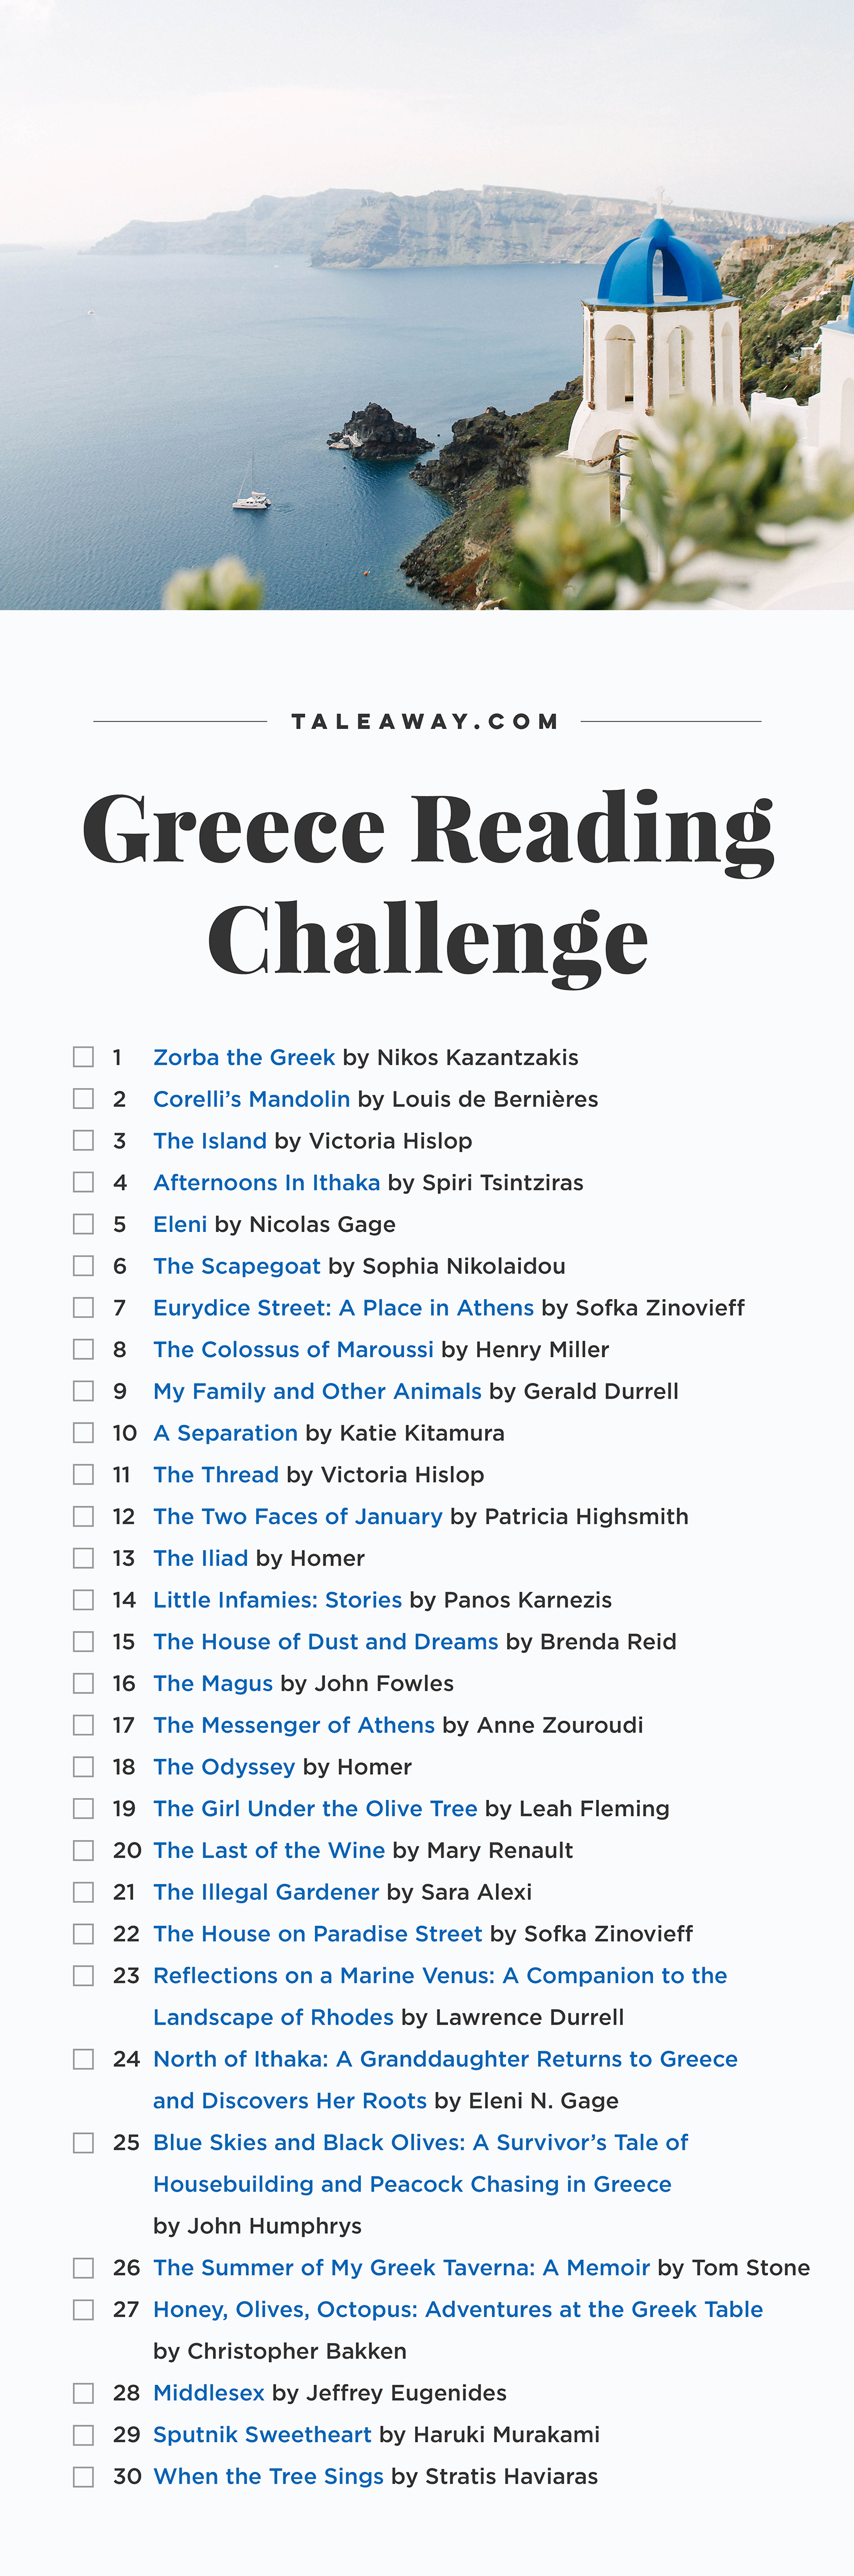 Greece Reading Challenge, Books Set In Greece - For more books visit www.taleway.com to find books set around the world. Ideas for those who like to travel, both in life and in fiction. reading challenge, greece reading challenge, book challenge, books you must read, books from around the world, world books, books and travel, travel reading list, reading list, books around the world, books to read, greece books, greece books novels, greece travel